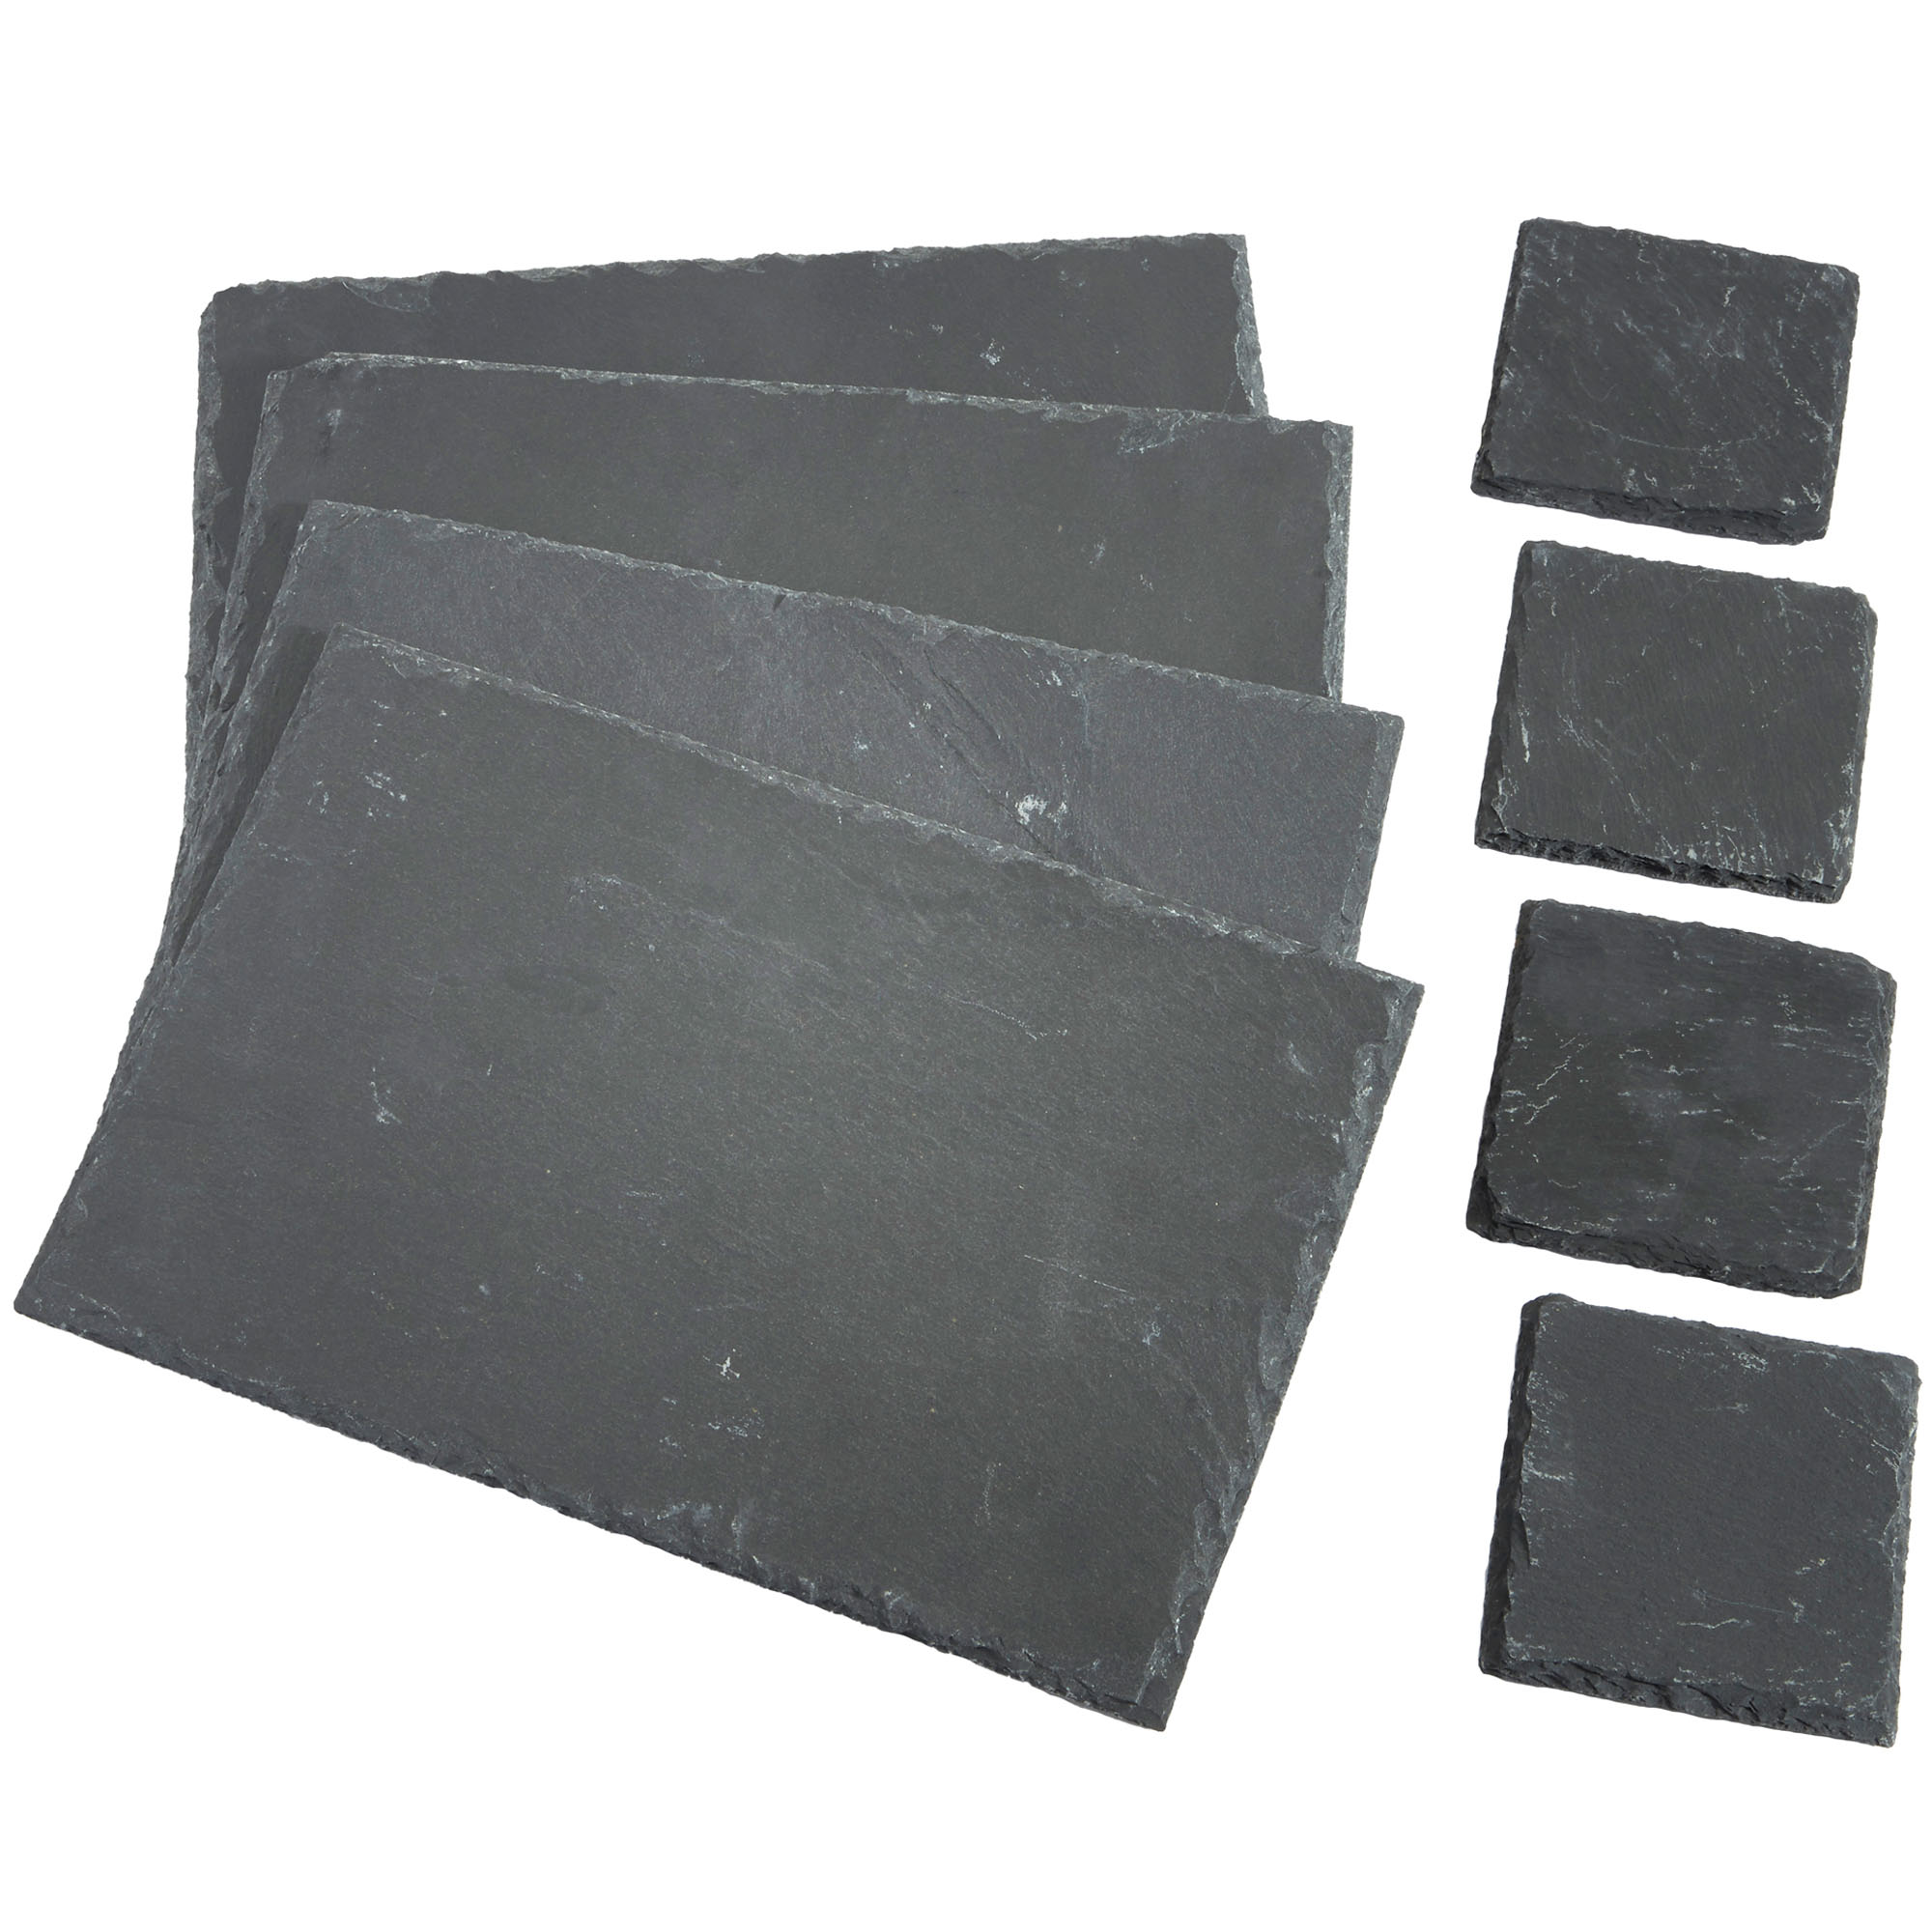 Vonshef 8 Handmade Square Natural Slate Coffee Table Placemats Coasters Ebay